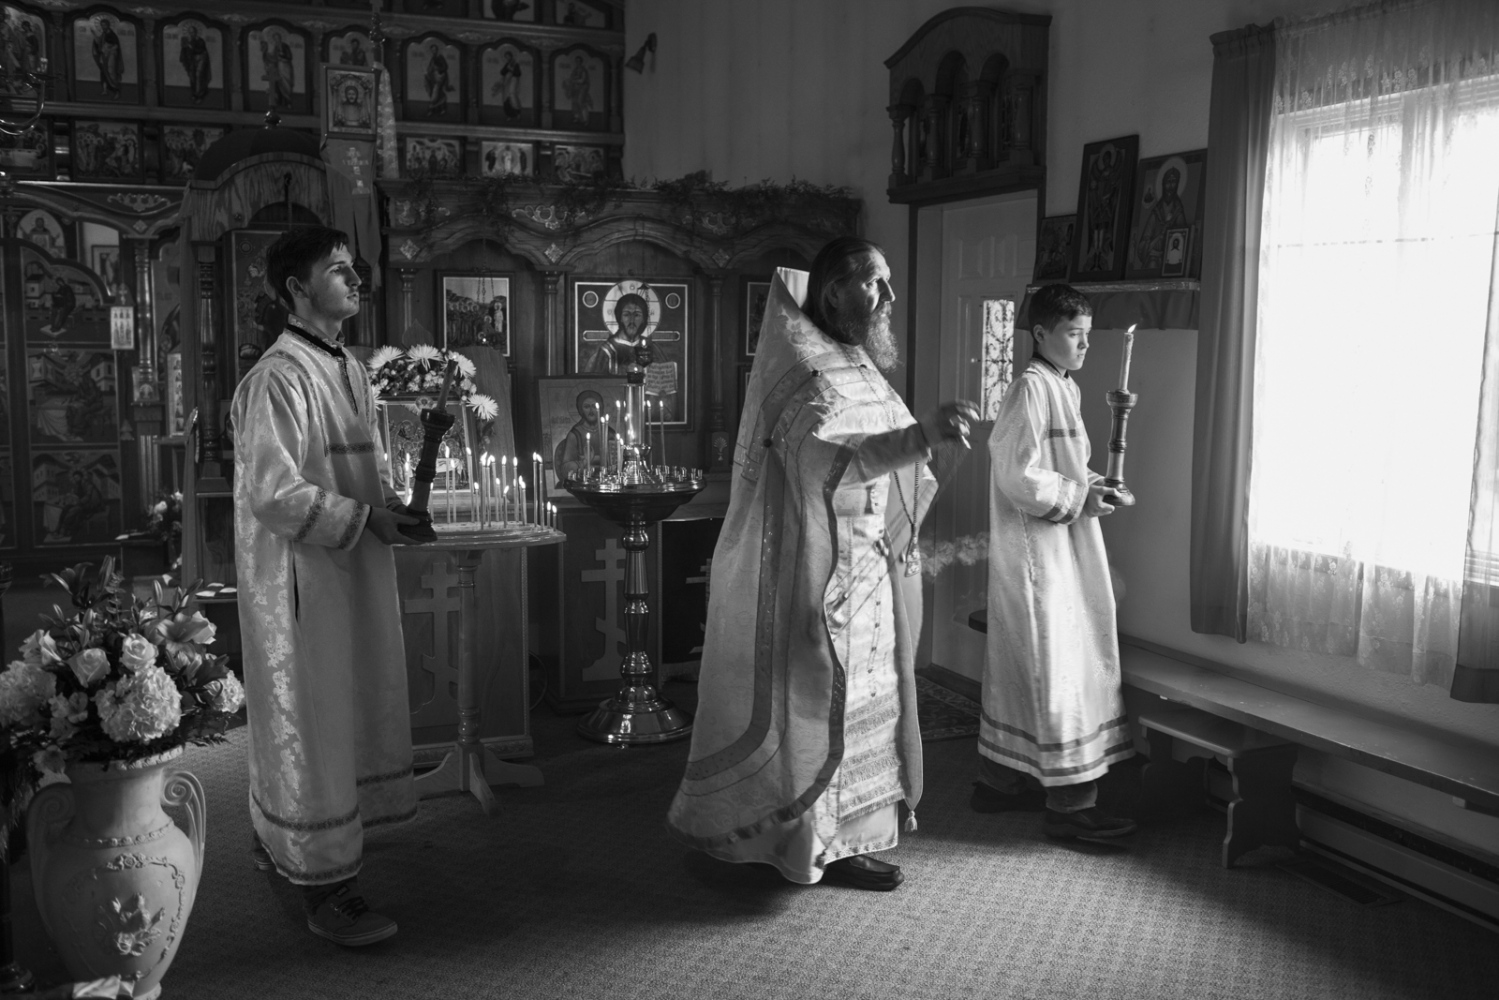 Inside the church of Saint Nicholas, Father Nikolai Yakunin blesses parishioners during Pascha, which begins at midnight and ends at dawn. The smoke of the incense is said to lift prayers to heaven.